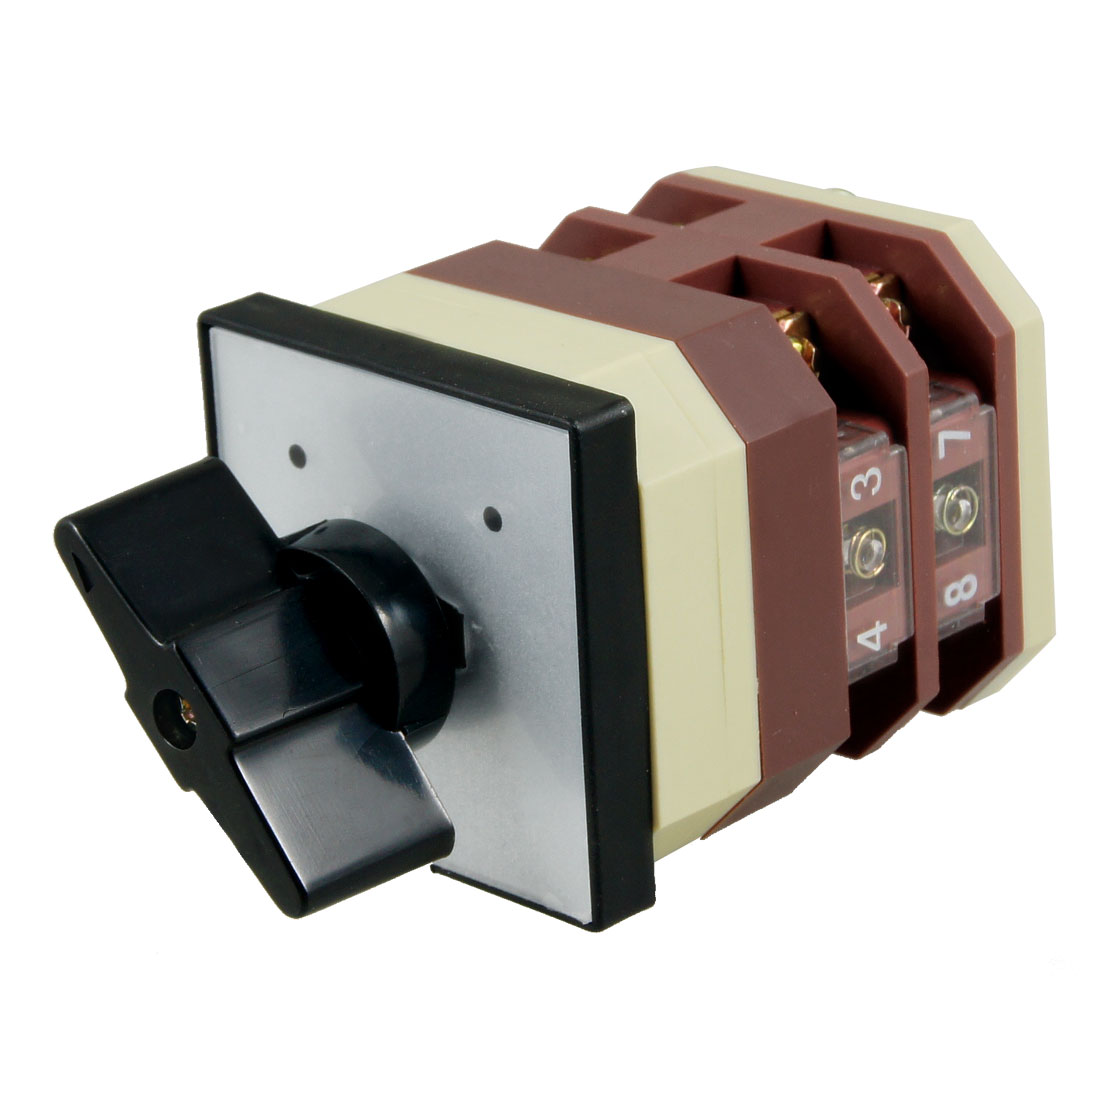 Latching Locking AC 380V 16AMP 2 Position Cam Combination Changeover Switch